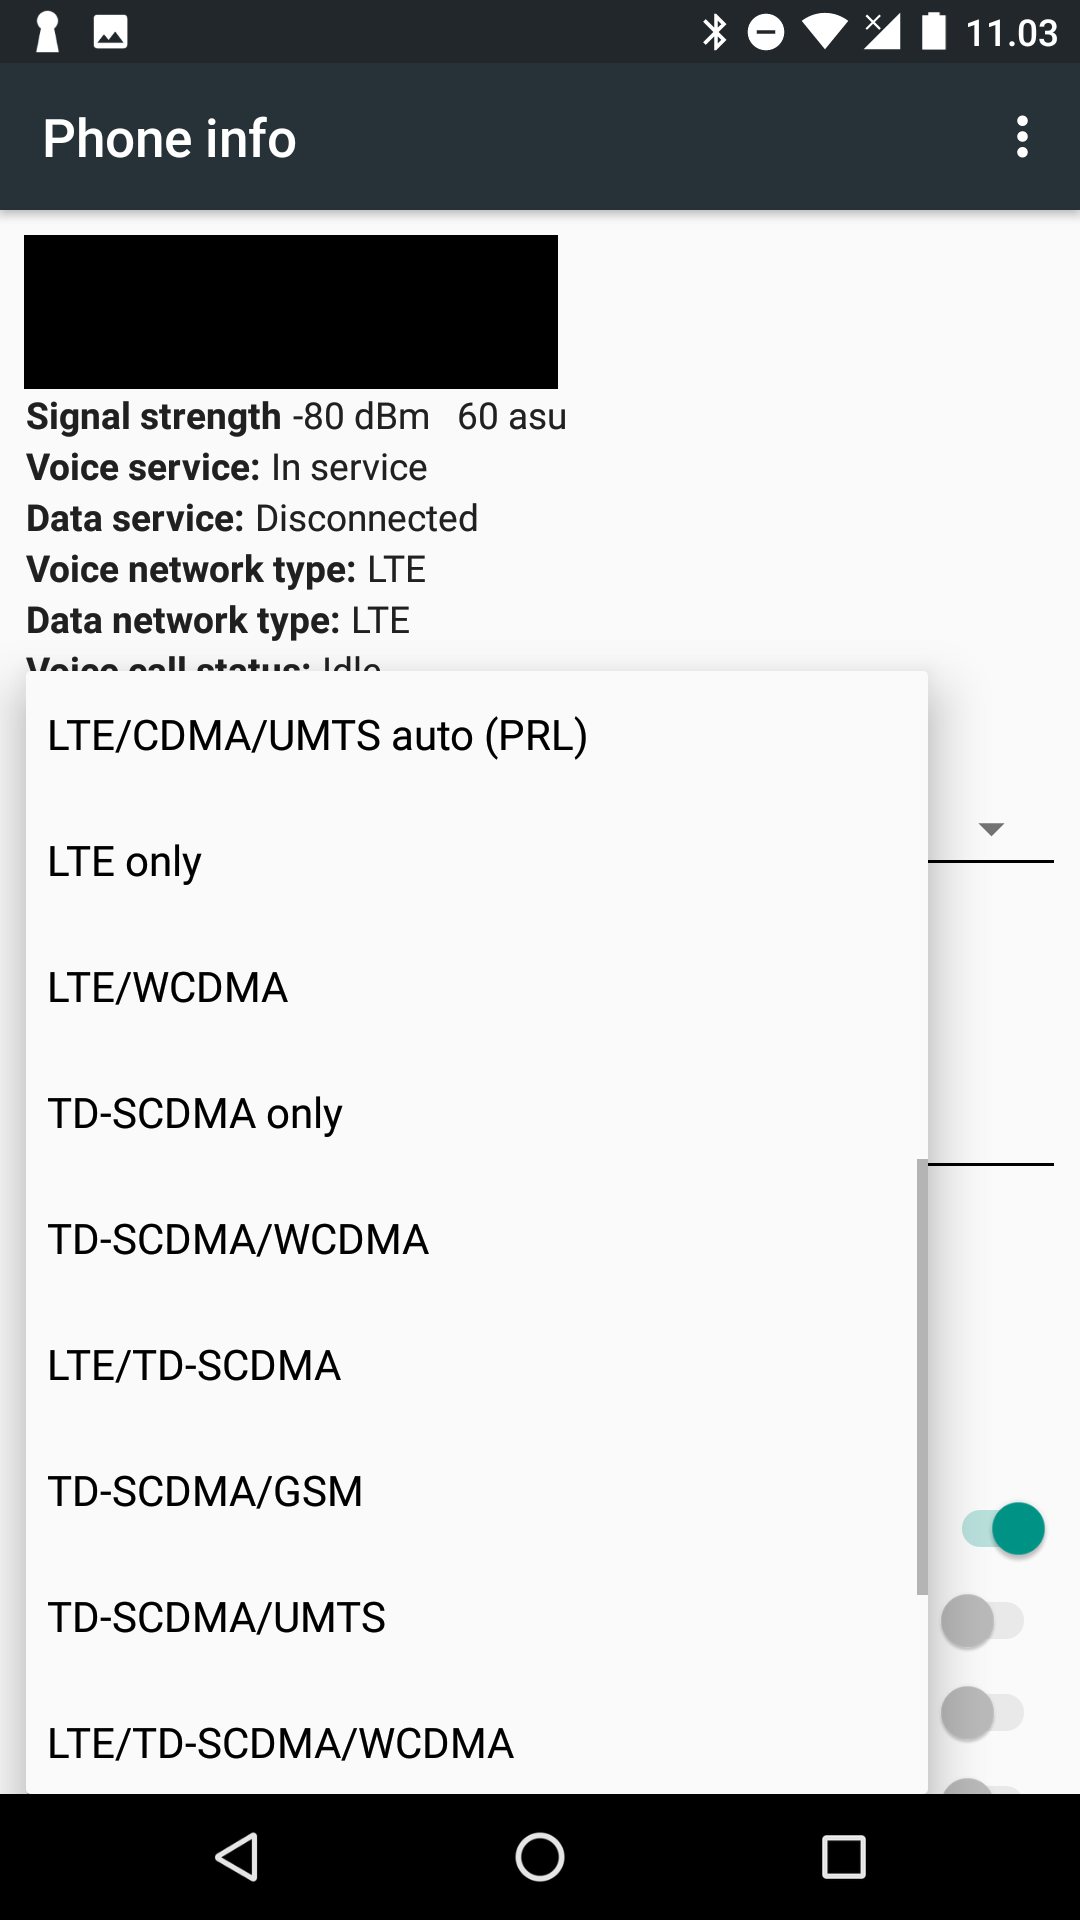 How to lock my phone to 2G/3G/4G? : Cellmapper